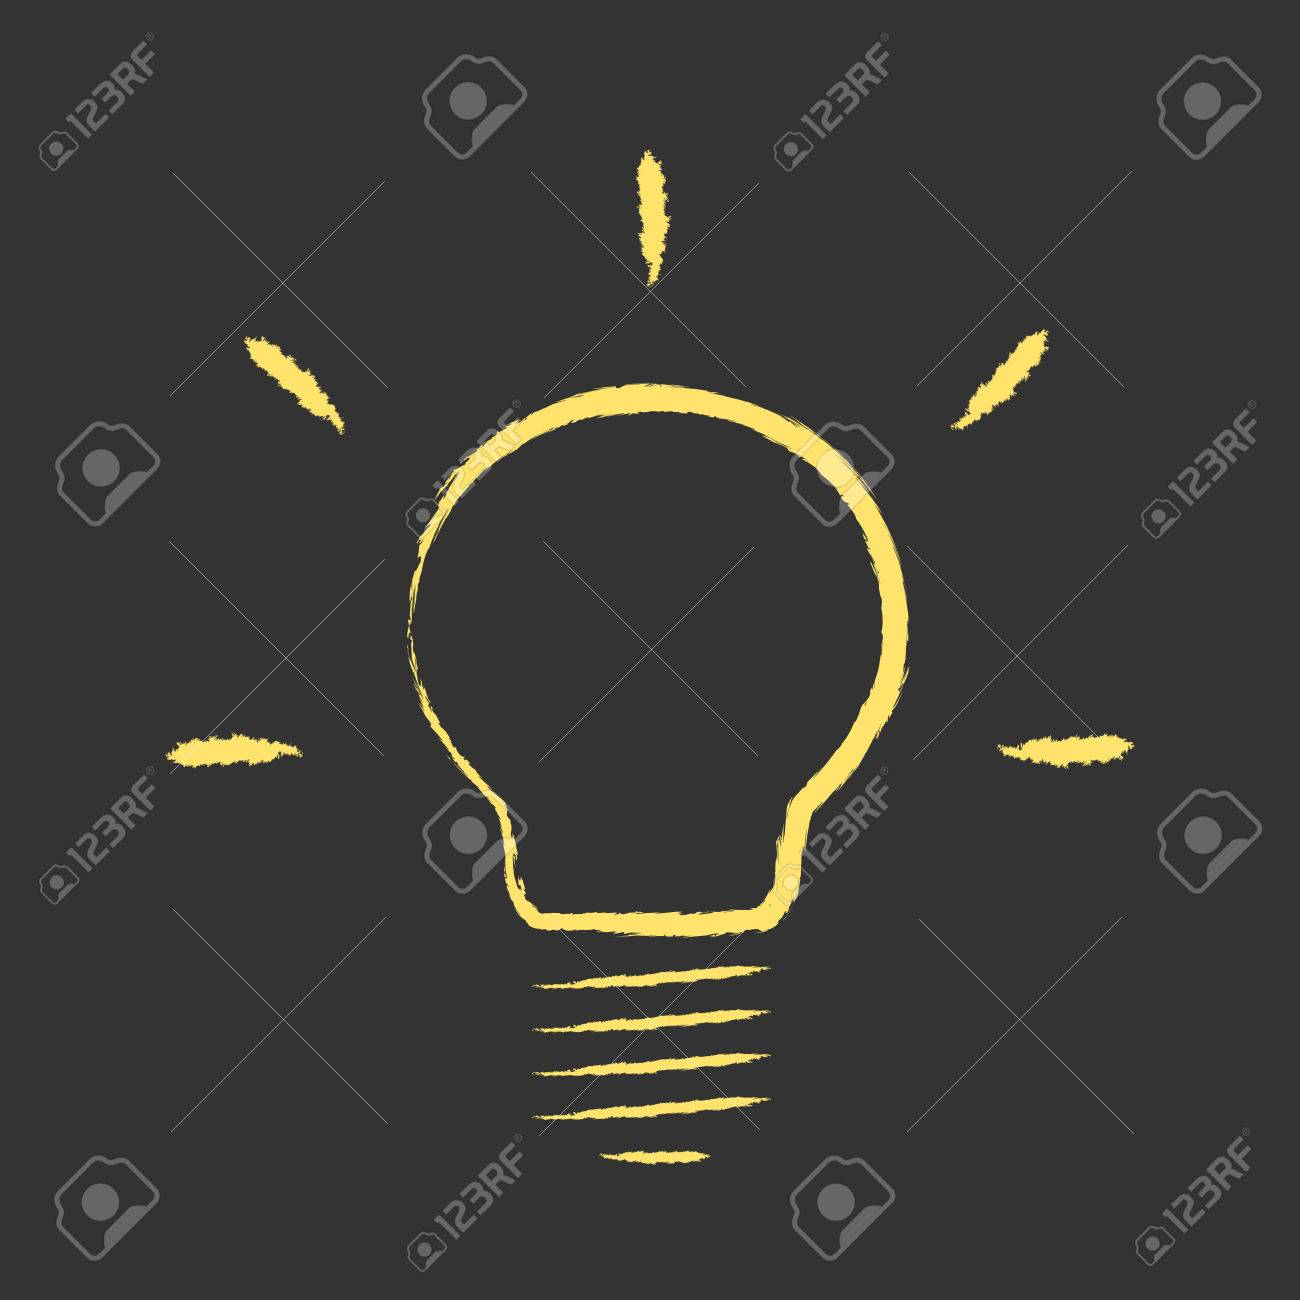 Yellow Glowing Hand Drawn Light Bulb On Black Background Idea 1300x1300